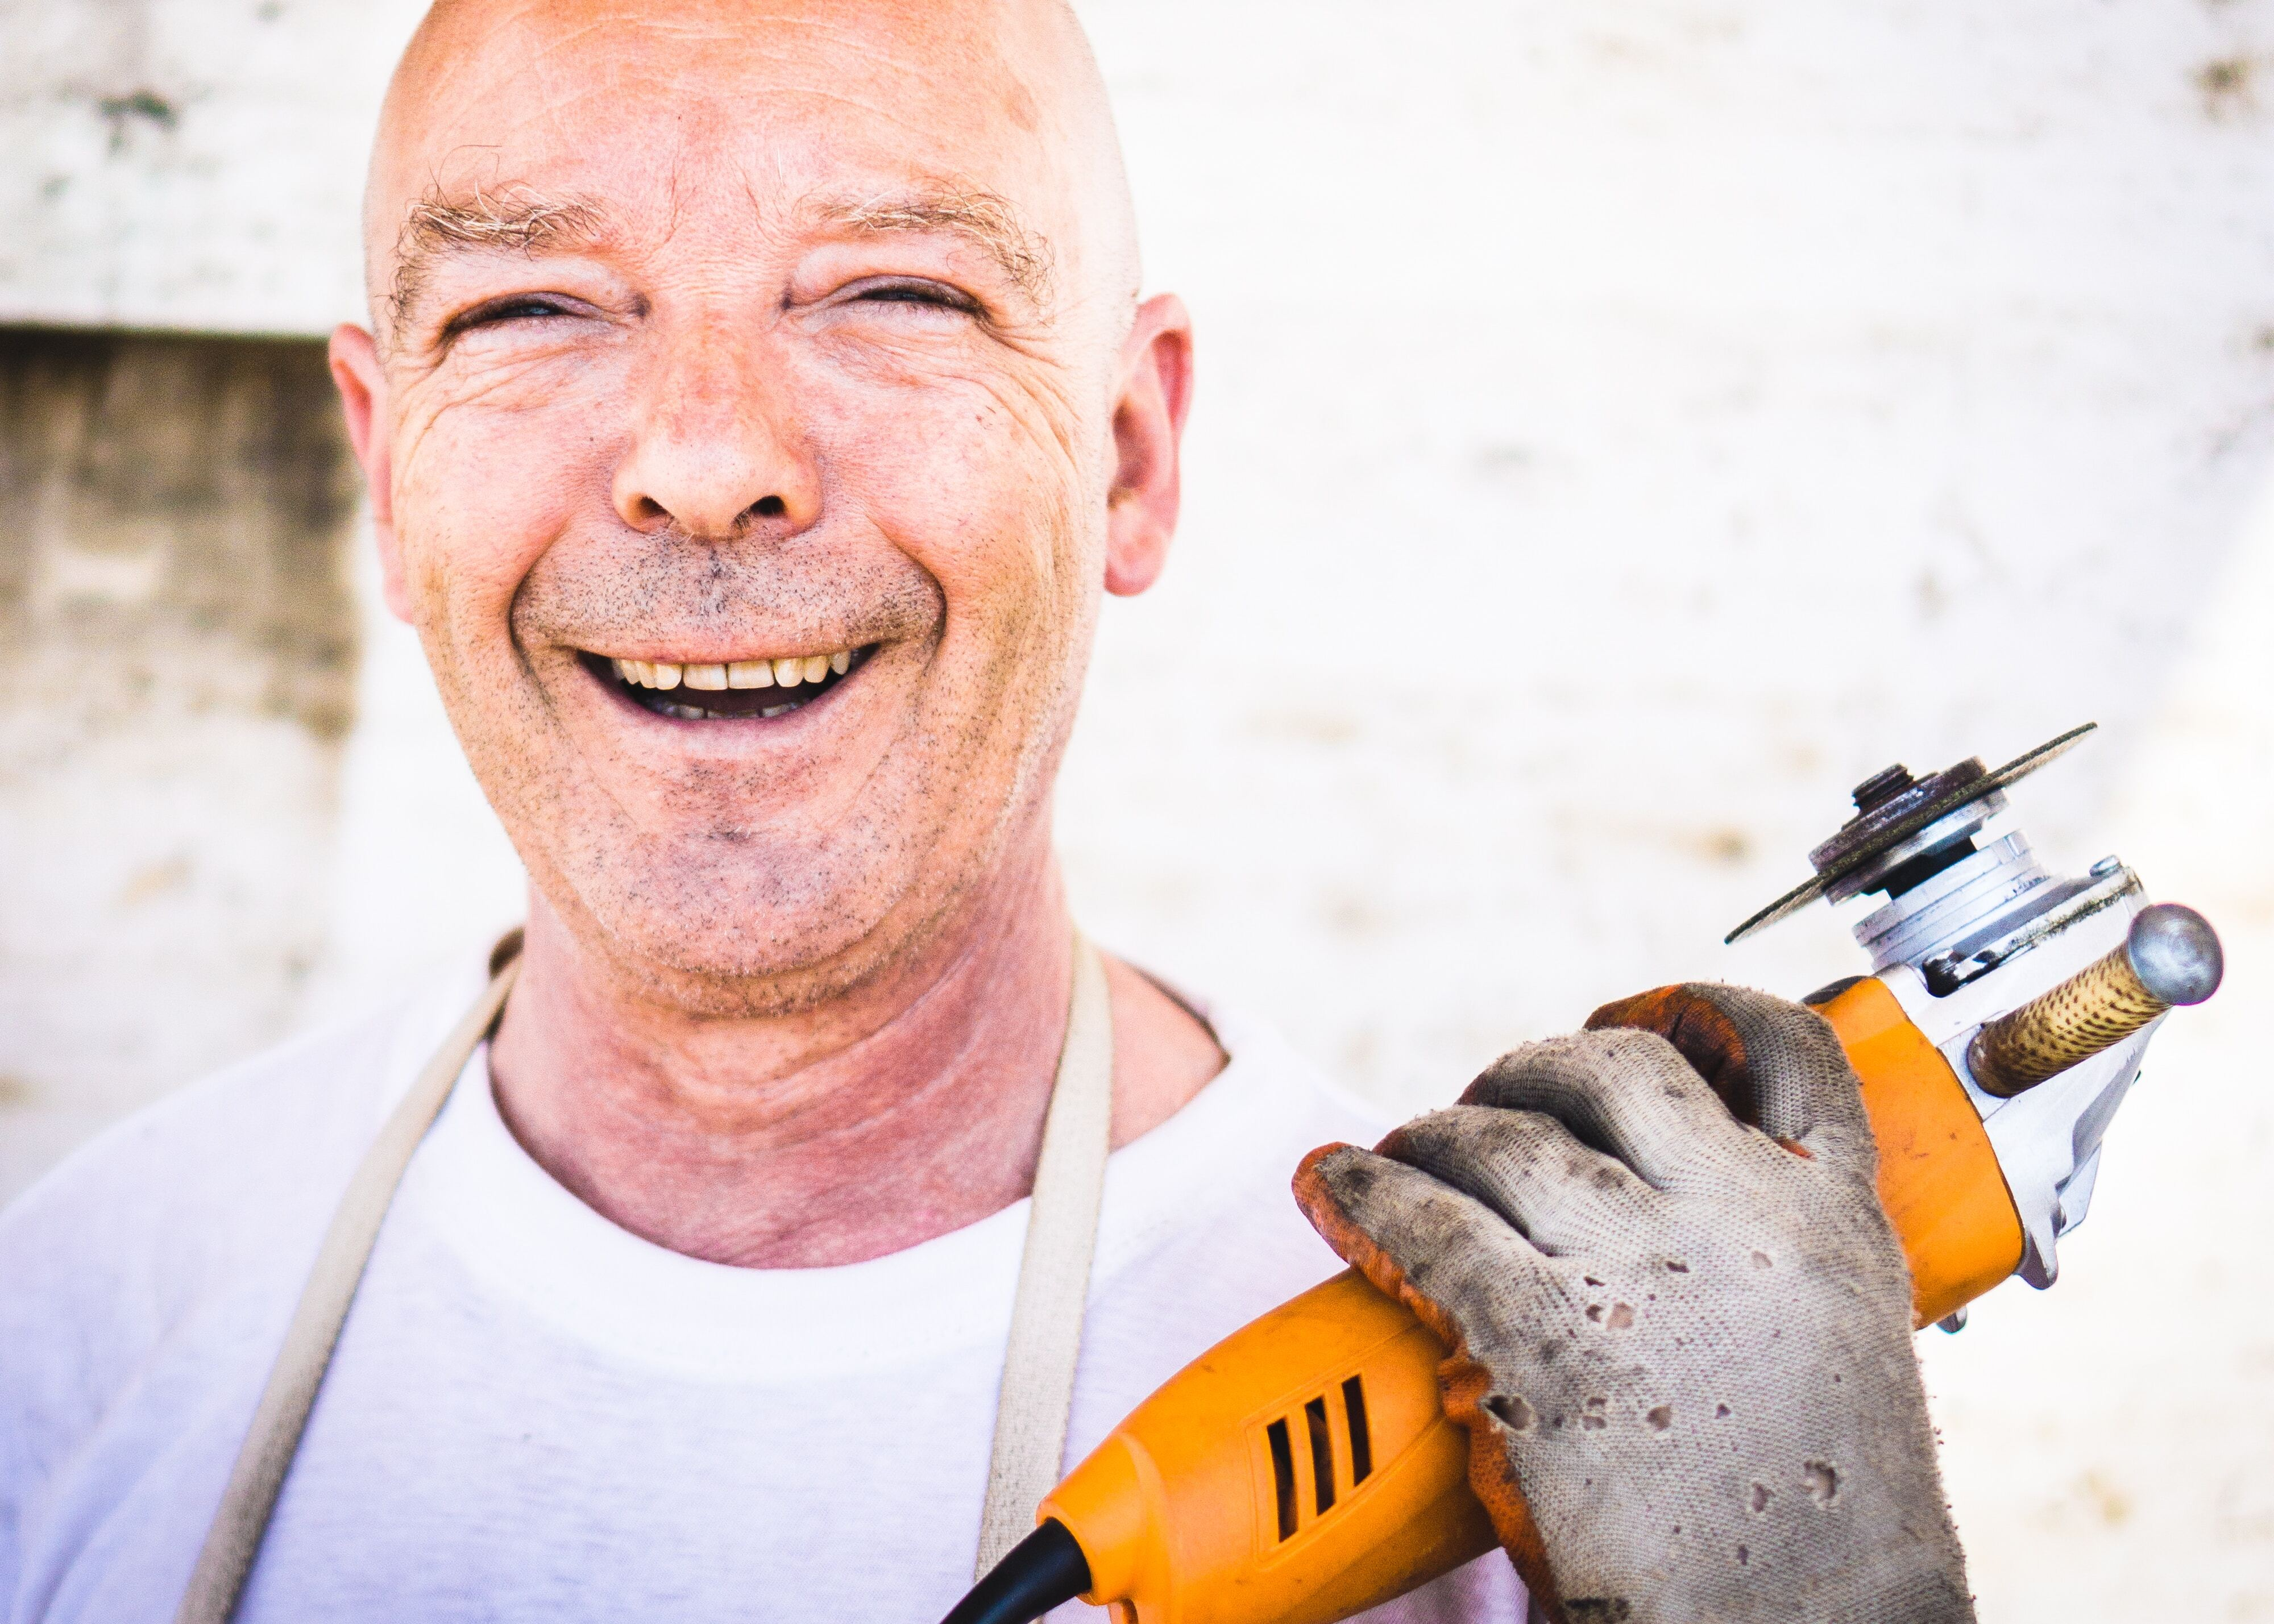 mature man smiling into the camera holding a power tool